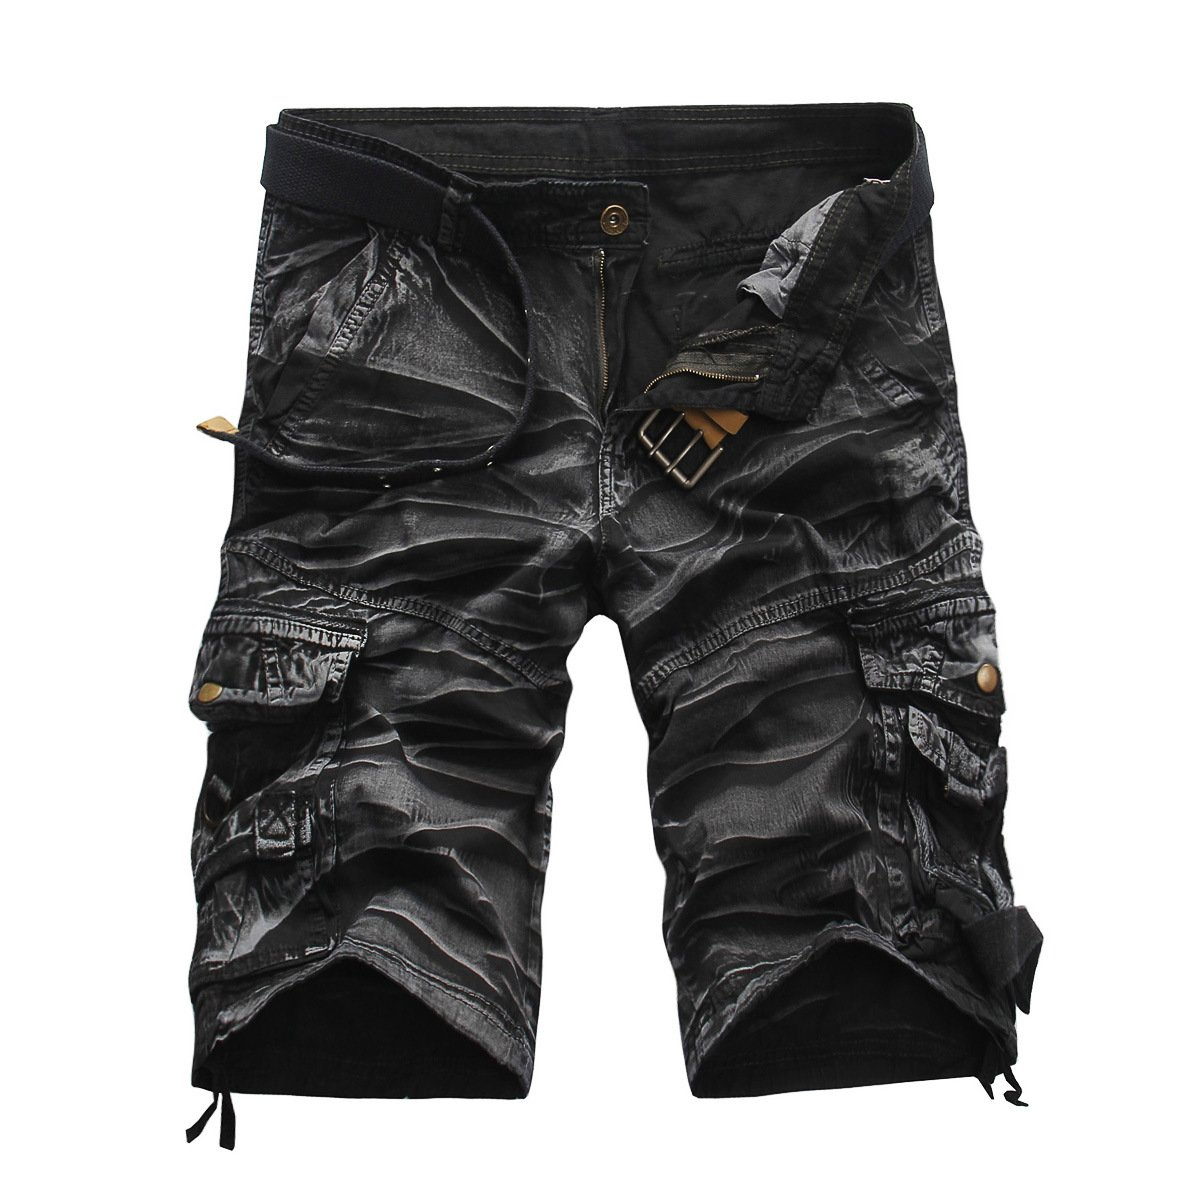 GARMOY Men's Cargo Shorts Camouflage Multi Pockets Twill Fit Breathable Summer Loose Outdoor Shorts Black Camouflage-36